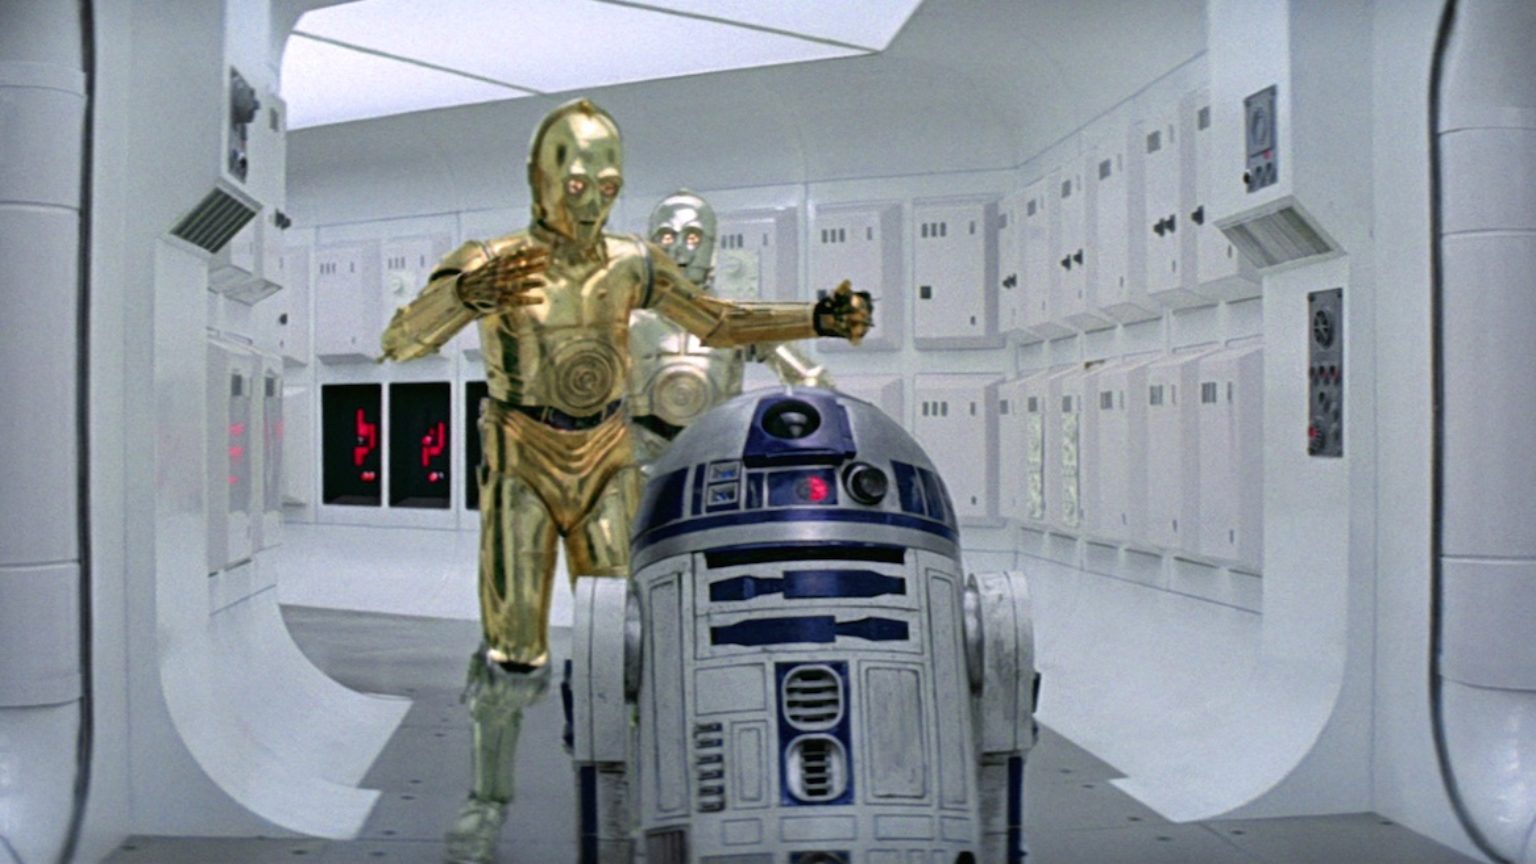 83ad989660 5 Underrated R2-D2 Moments